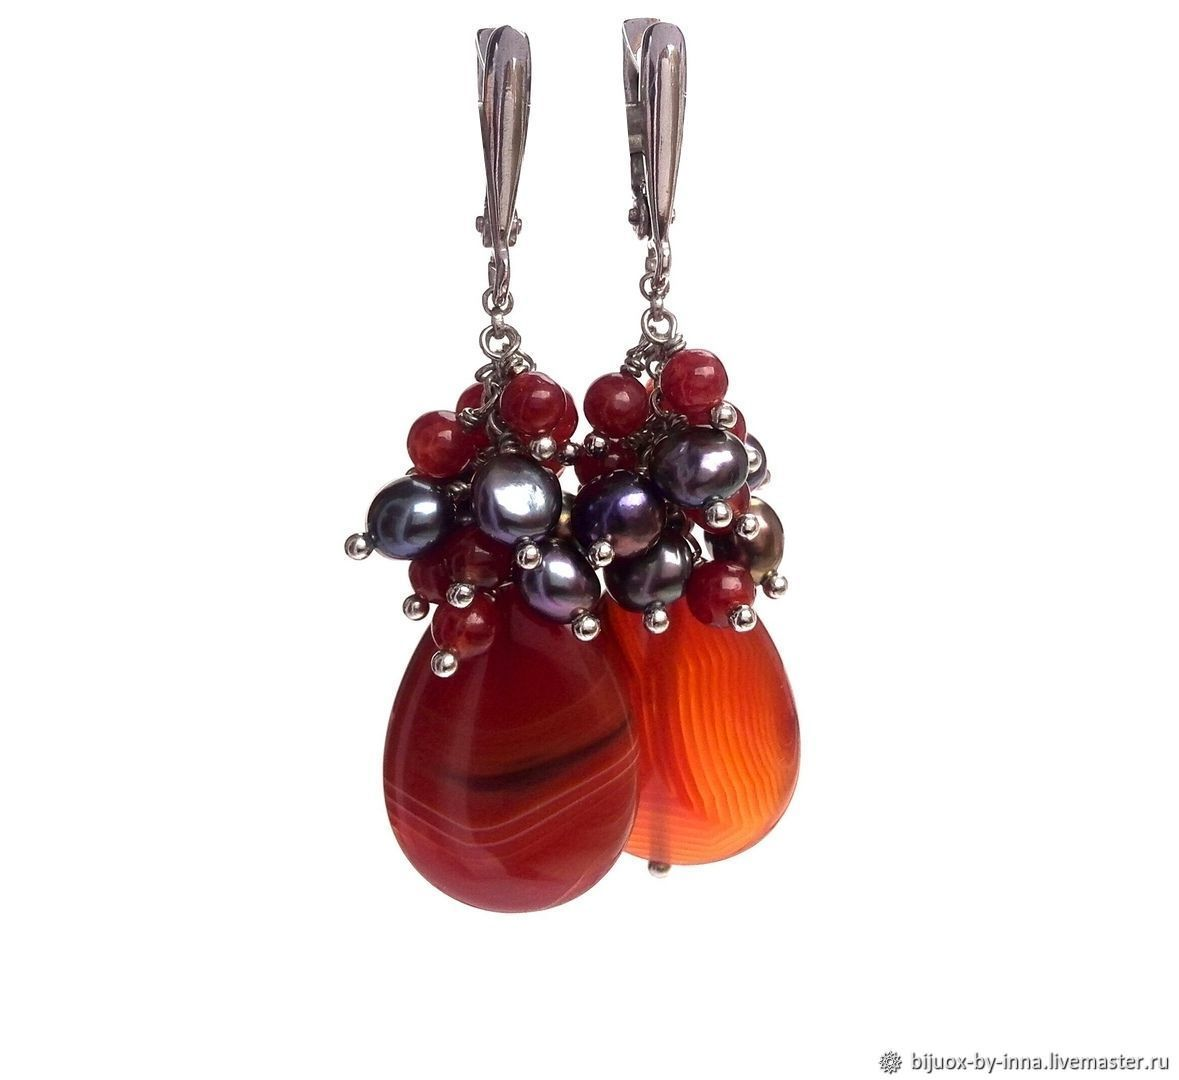 Bunch earrings with black pearls and carnelian. Earrings with chains, Earrings, Permian,  Фото №1